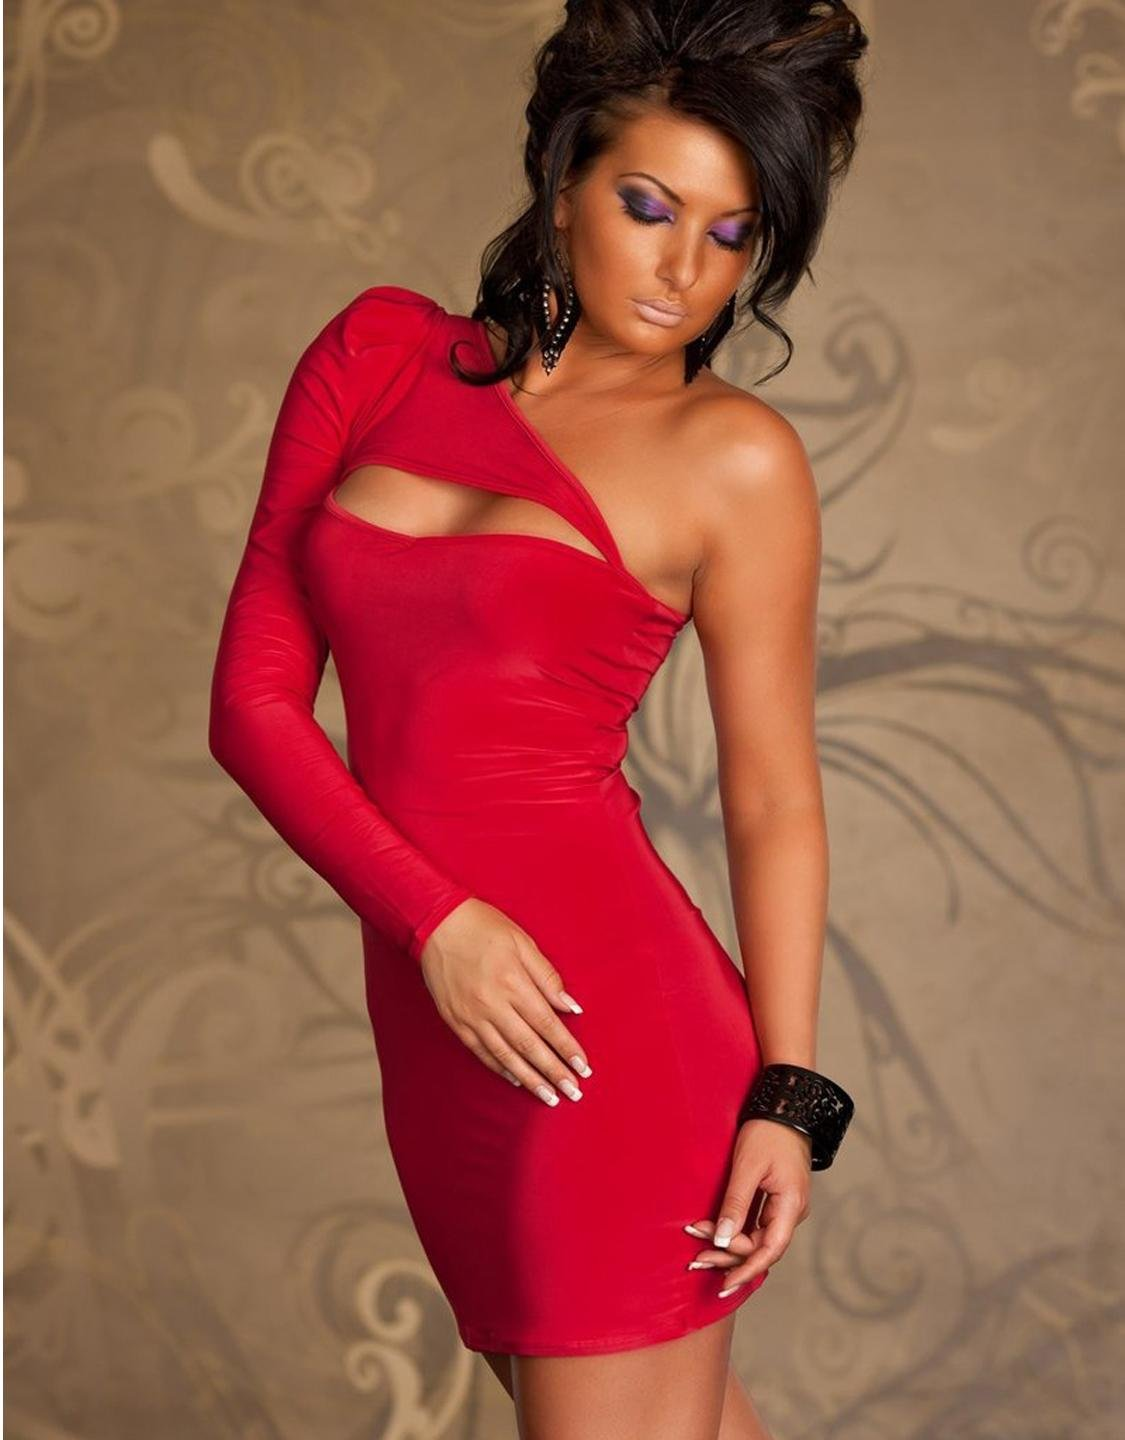 New Sexy Red Color One Size One Shoulder Hot Fashion Bodycon Women Dress W203121B